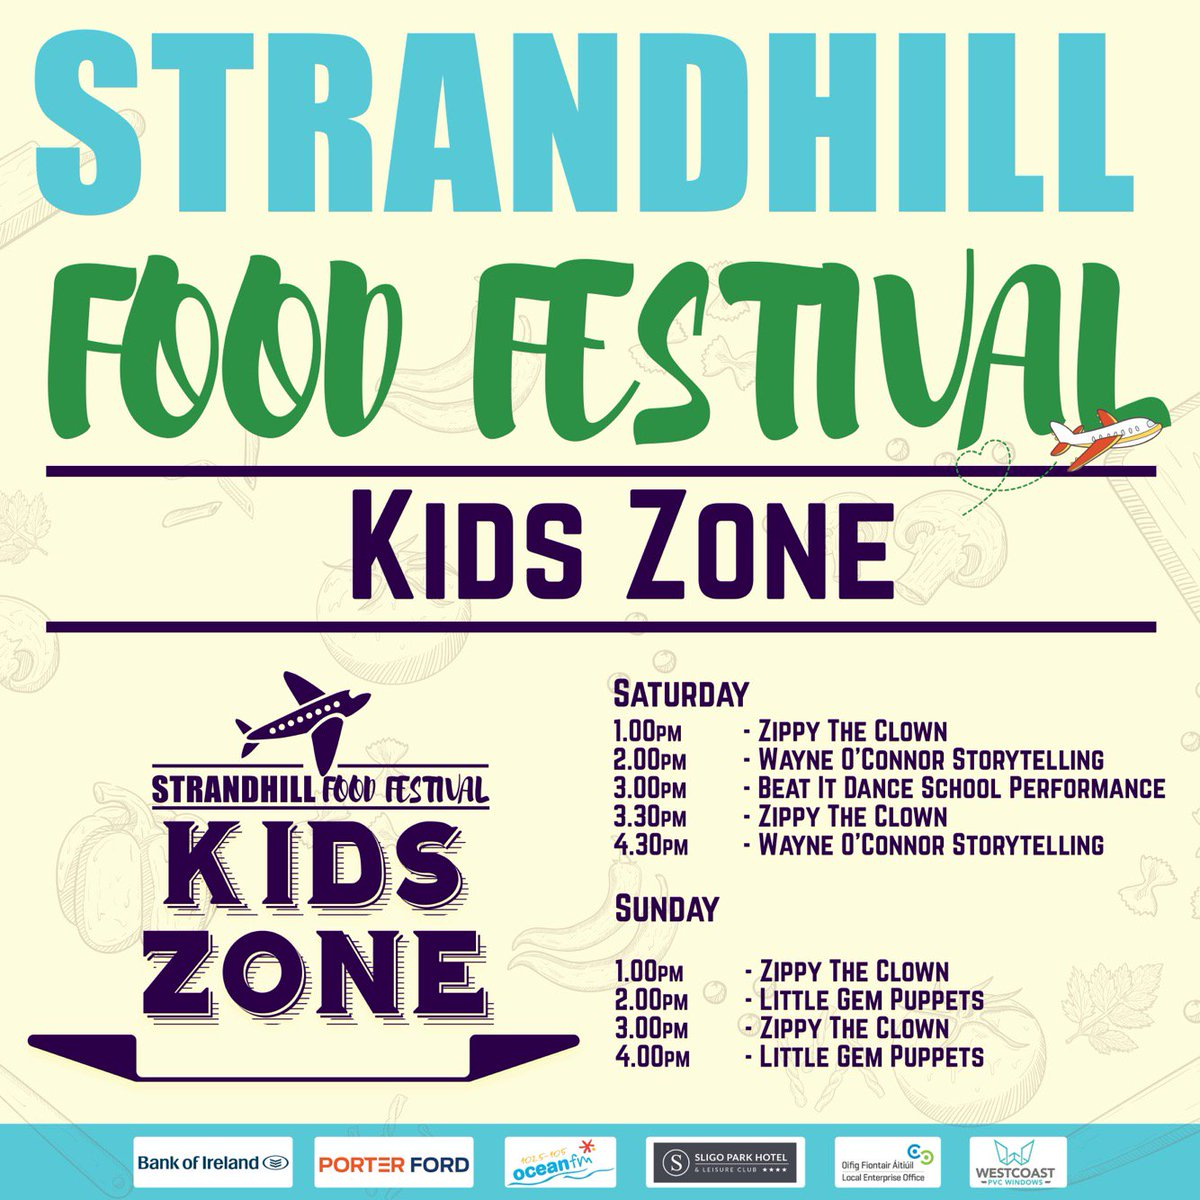 Kids go free at #strandhillfoodfest this weekend and they have a great line-up of activities to keep your little 'uns entertained! See you there. #fordsligo<br>http://pic.twitter.com/zN8pRApDiV